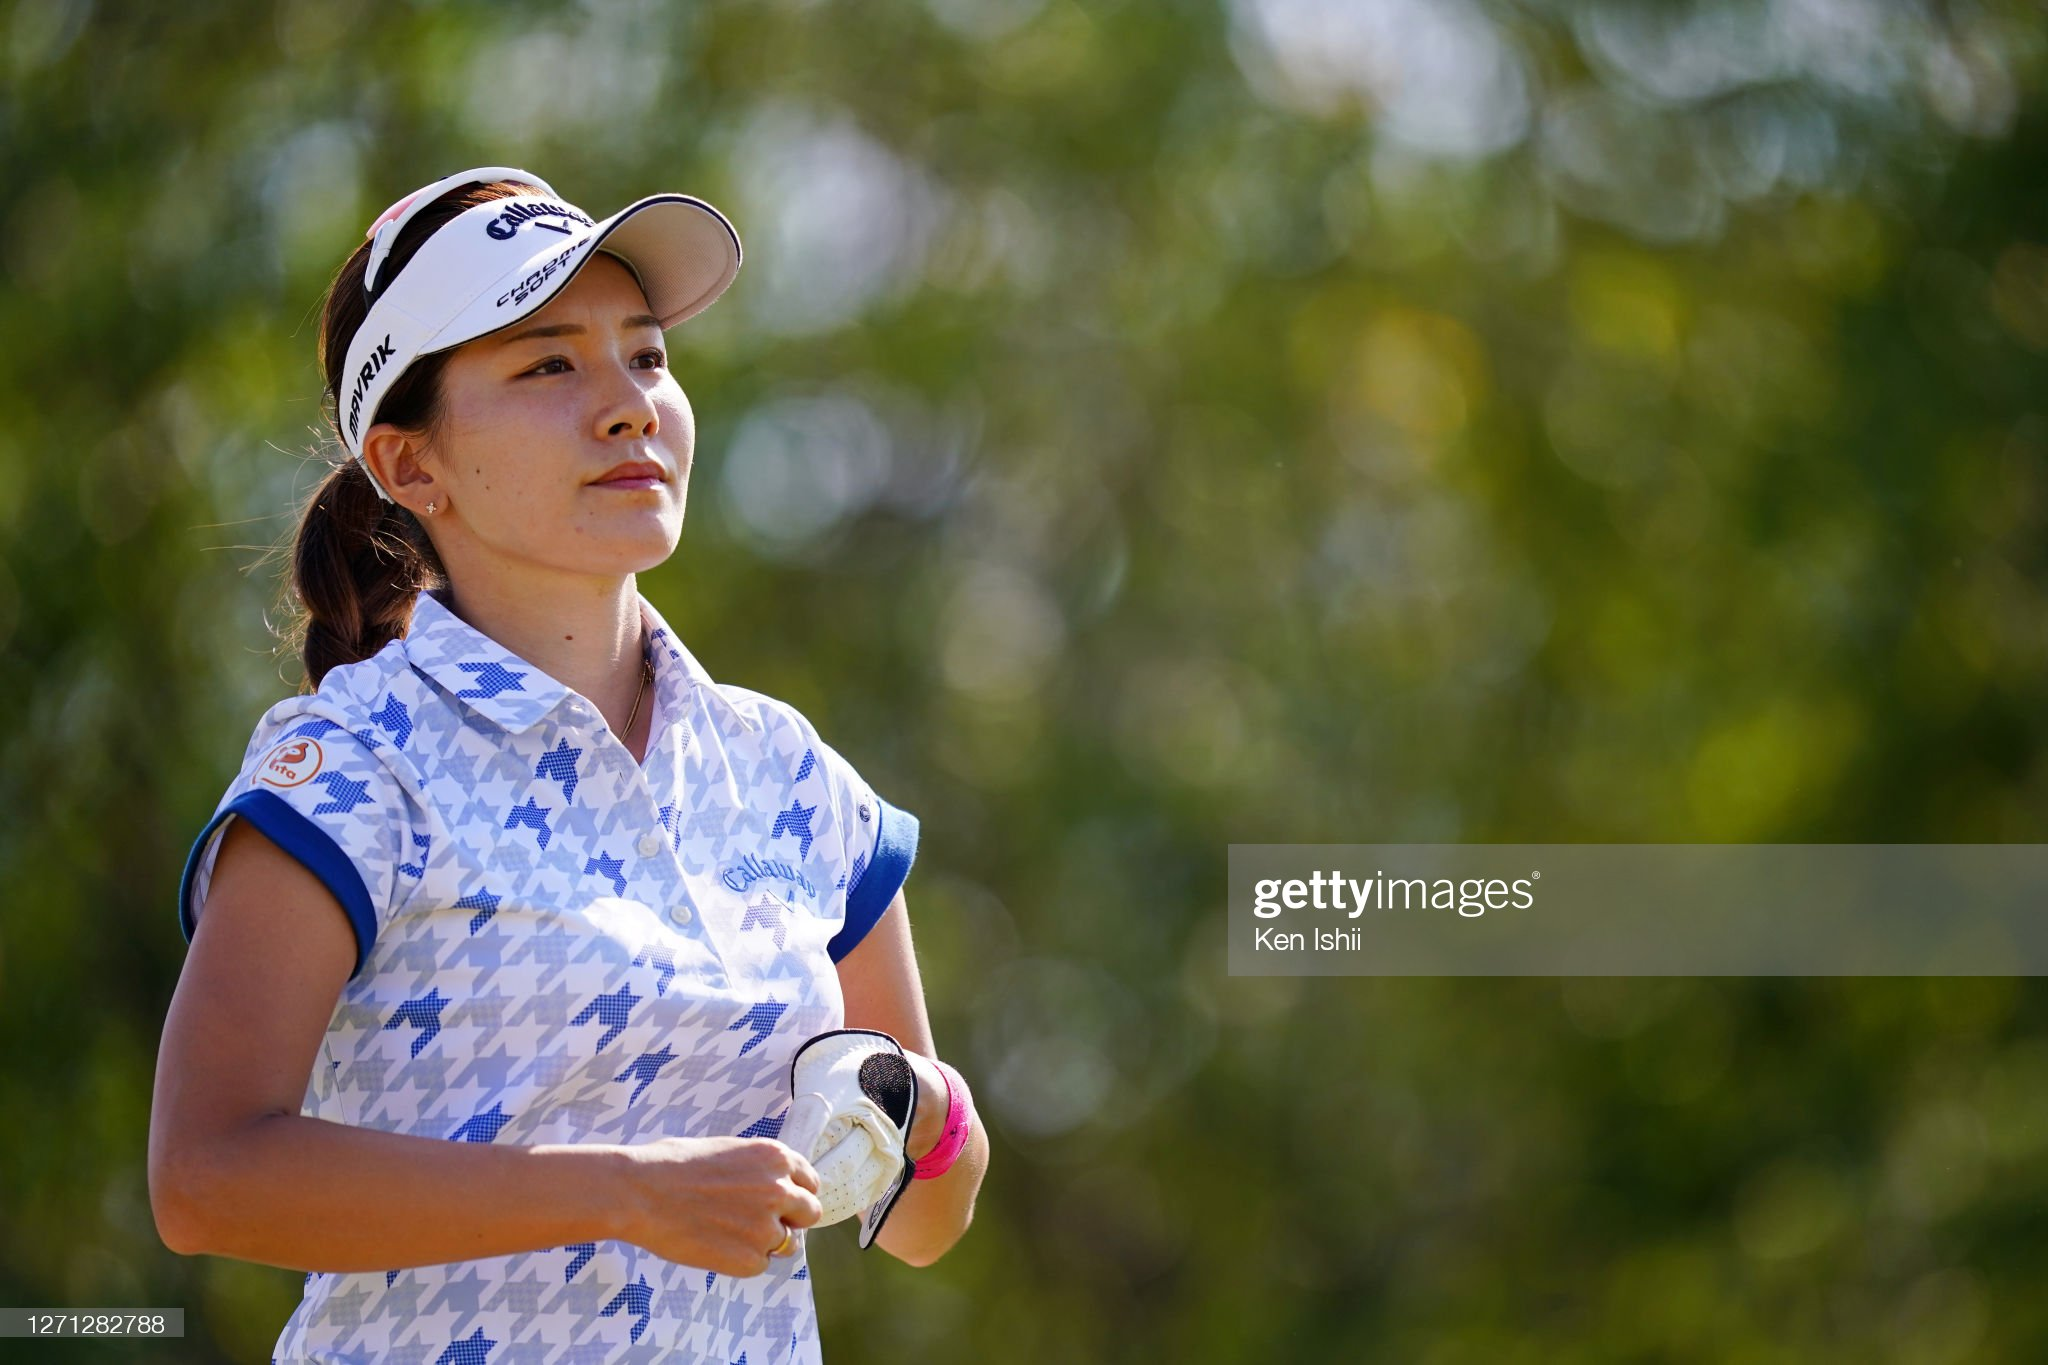 https://media.gettyimages.com/photos/hikari-fujita-of-japan-is-seen-on-the-2nd-hole-during-the-practice-picture-id1271282788?s=2048x2048